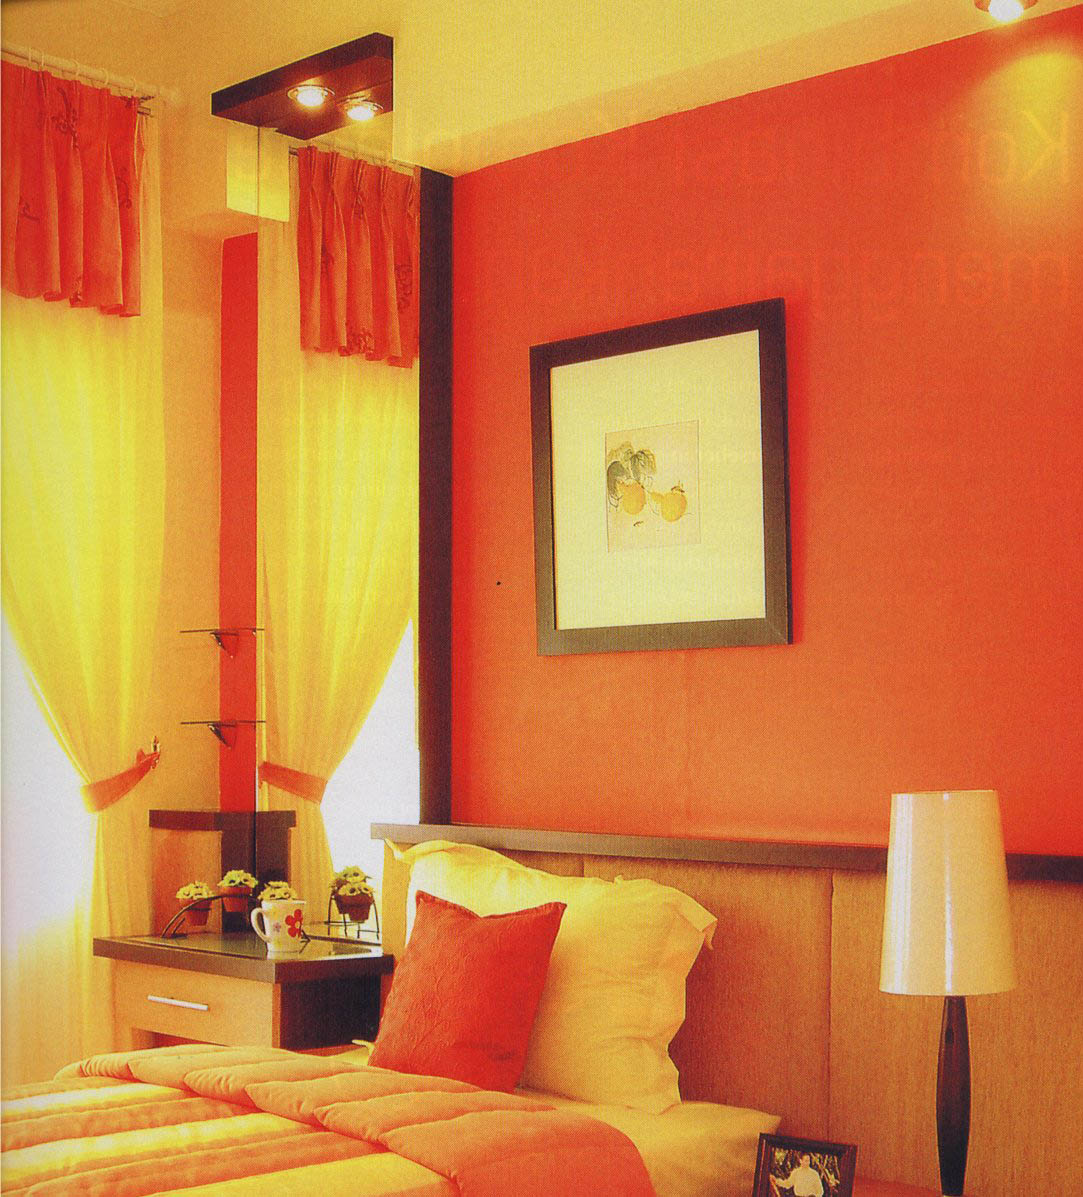 Bedroom painting ideas popular interior house ideas for Home painting ideas